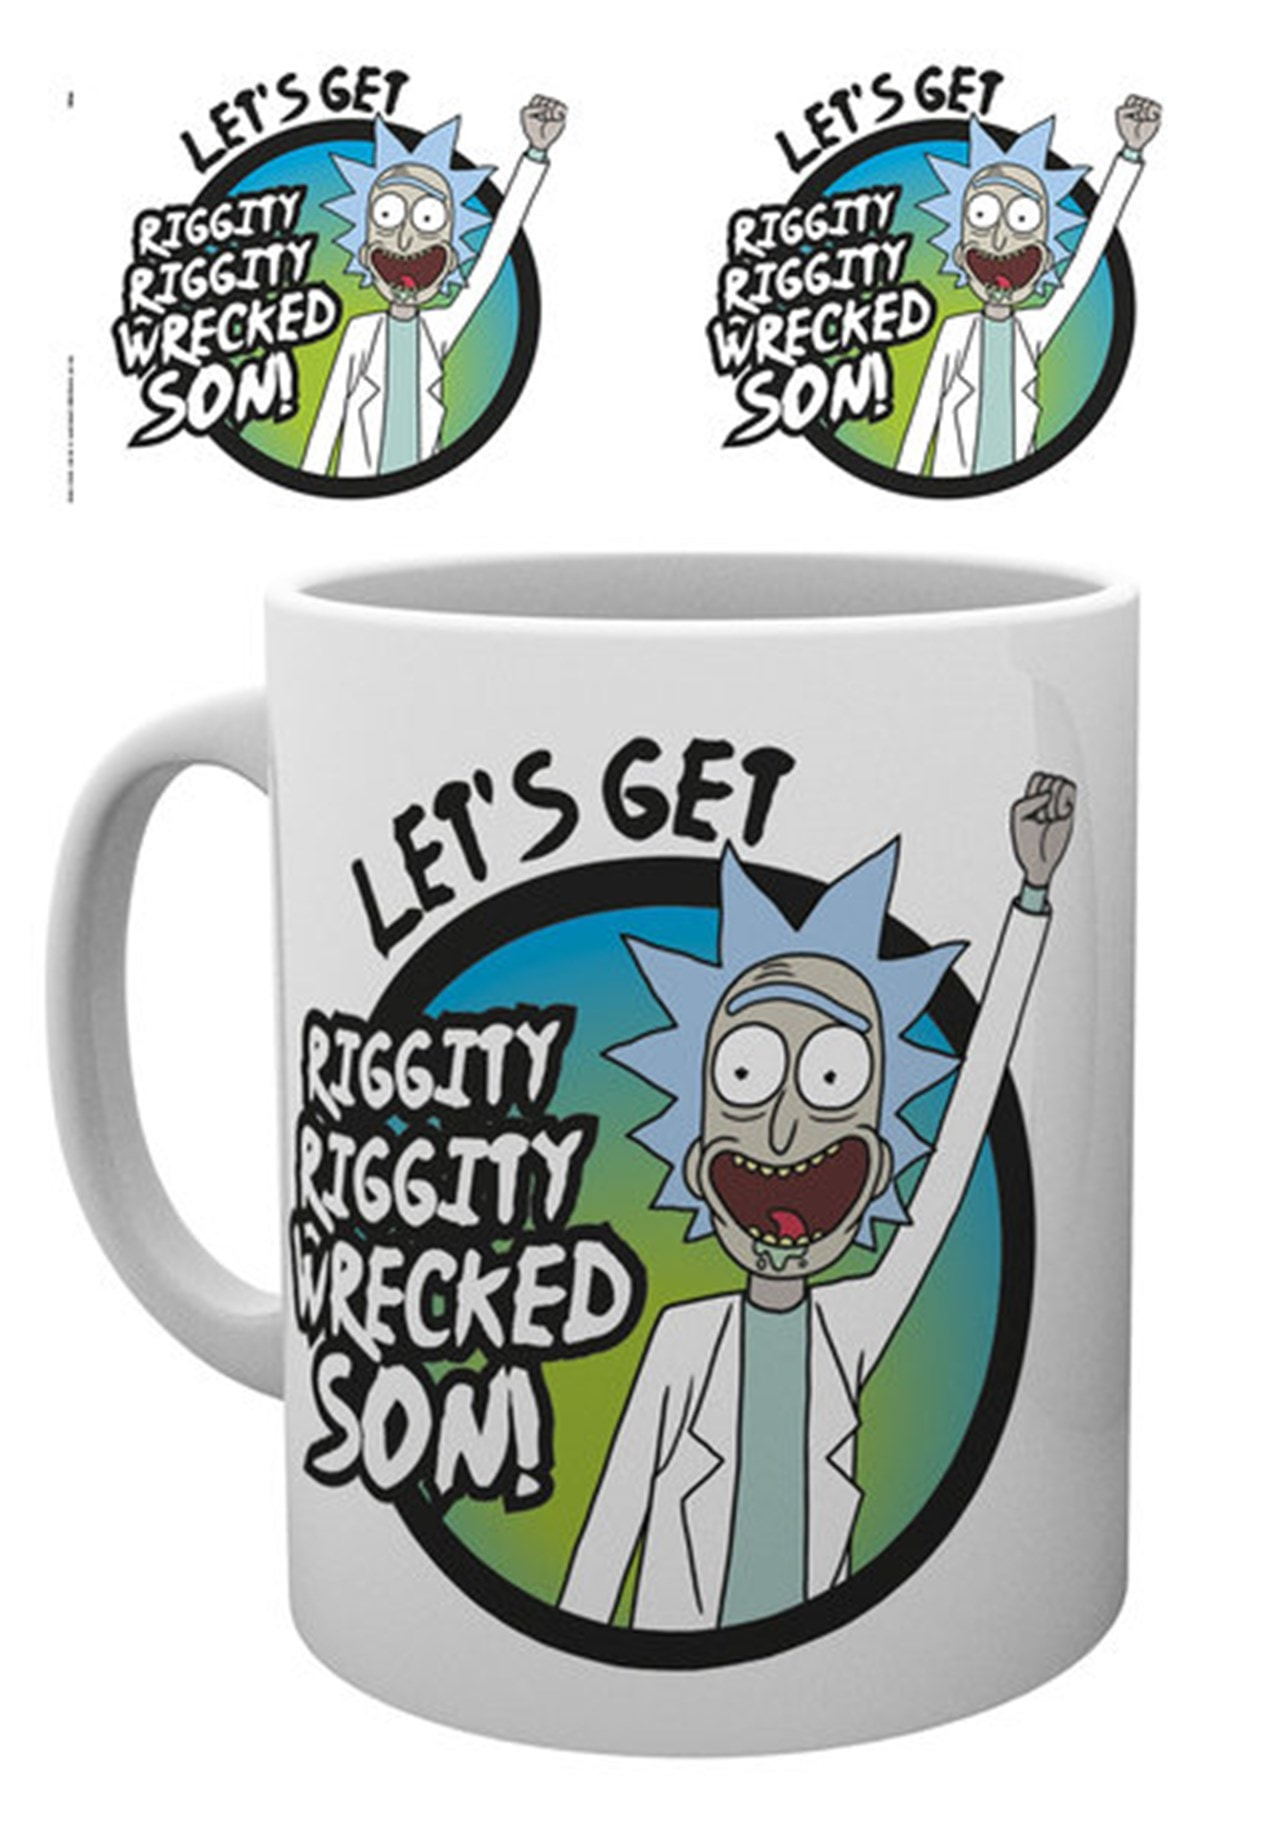 Rick & Morty: Wrecked - 1